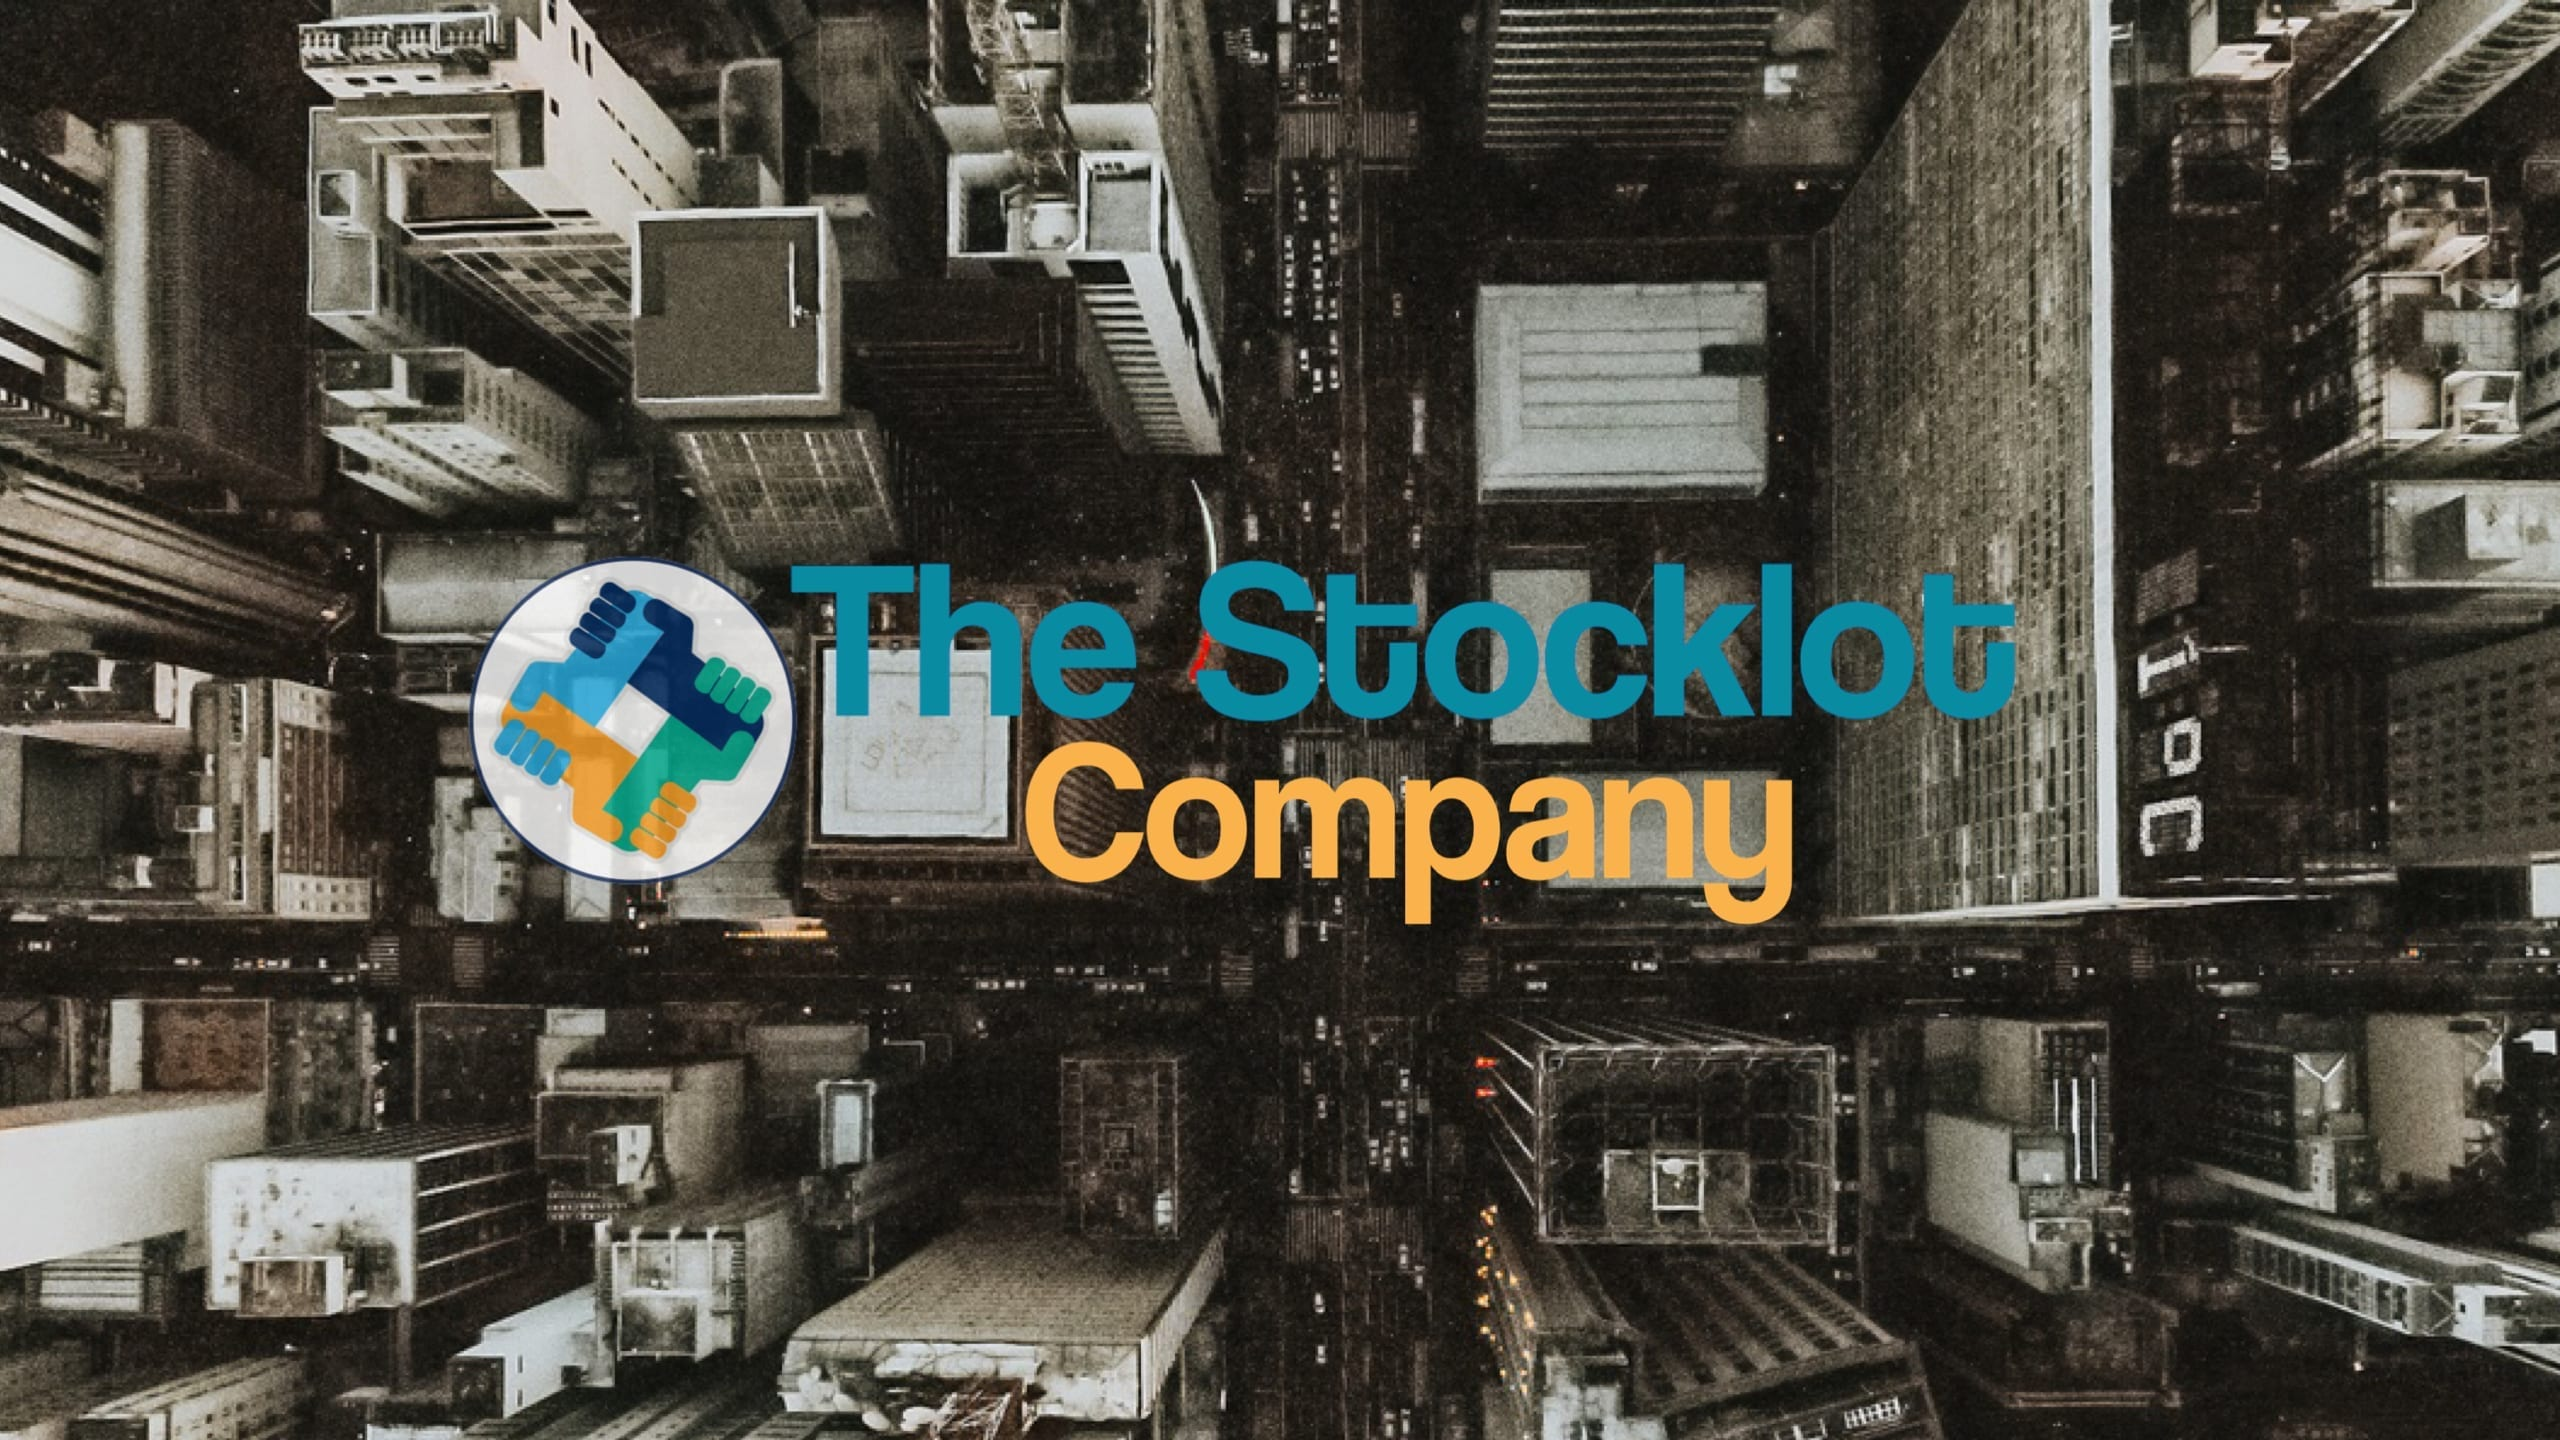 The Stocklot Company in Beugen